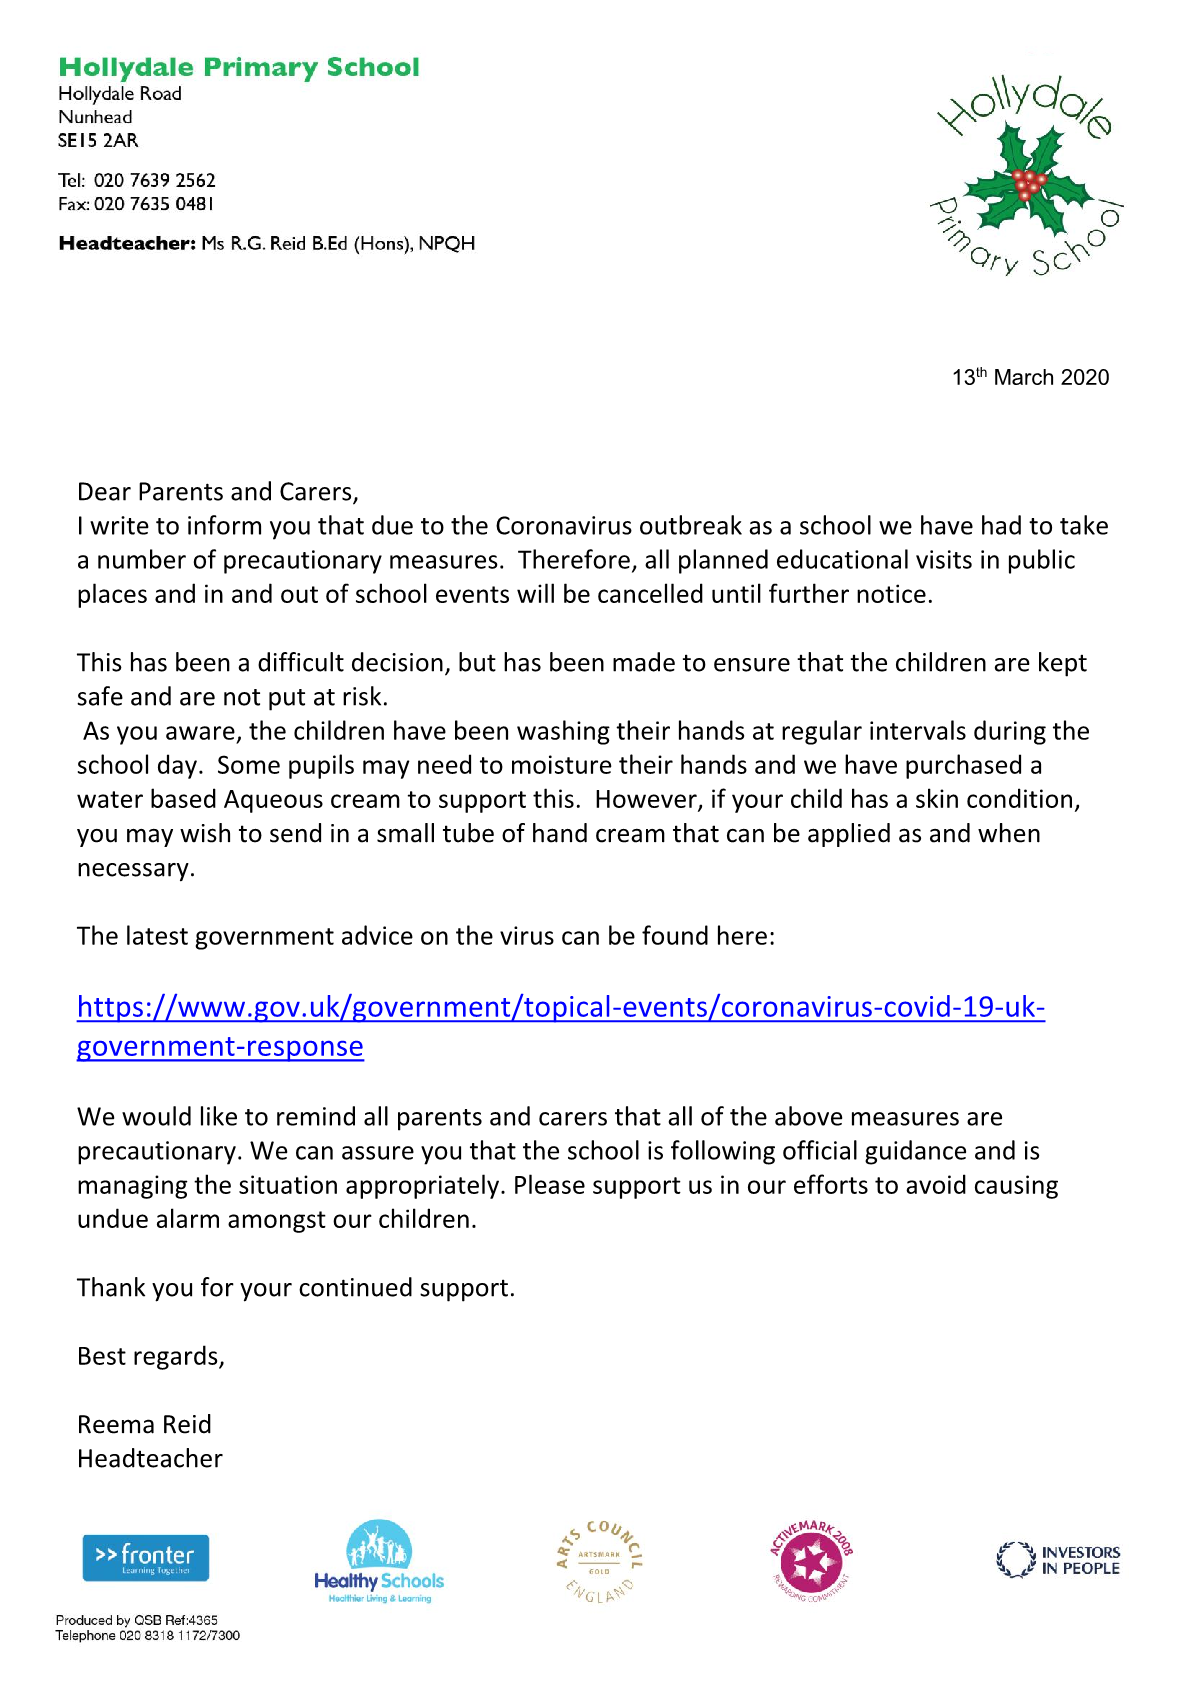 Coronavirus letter for parents 13th March 2020